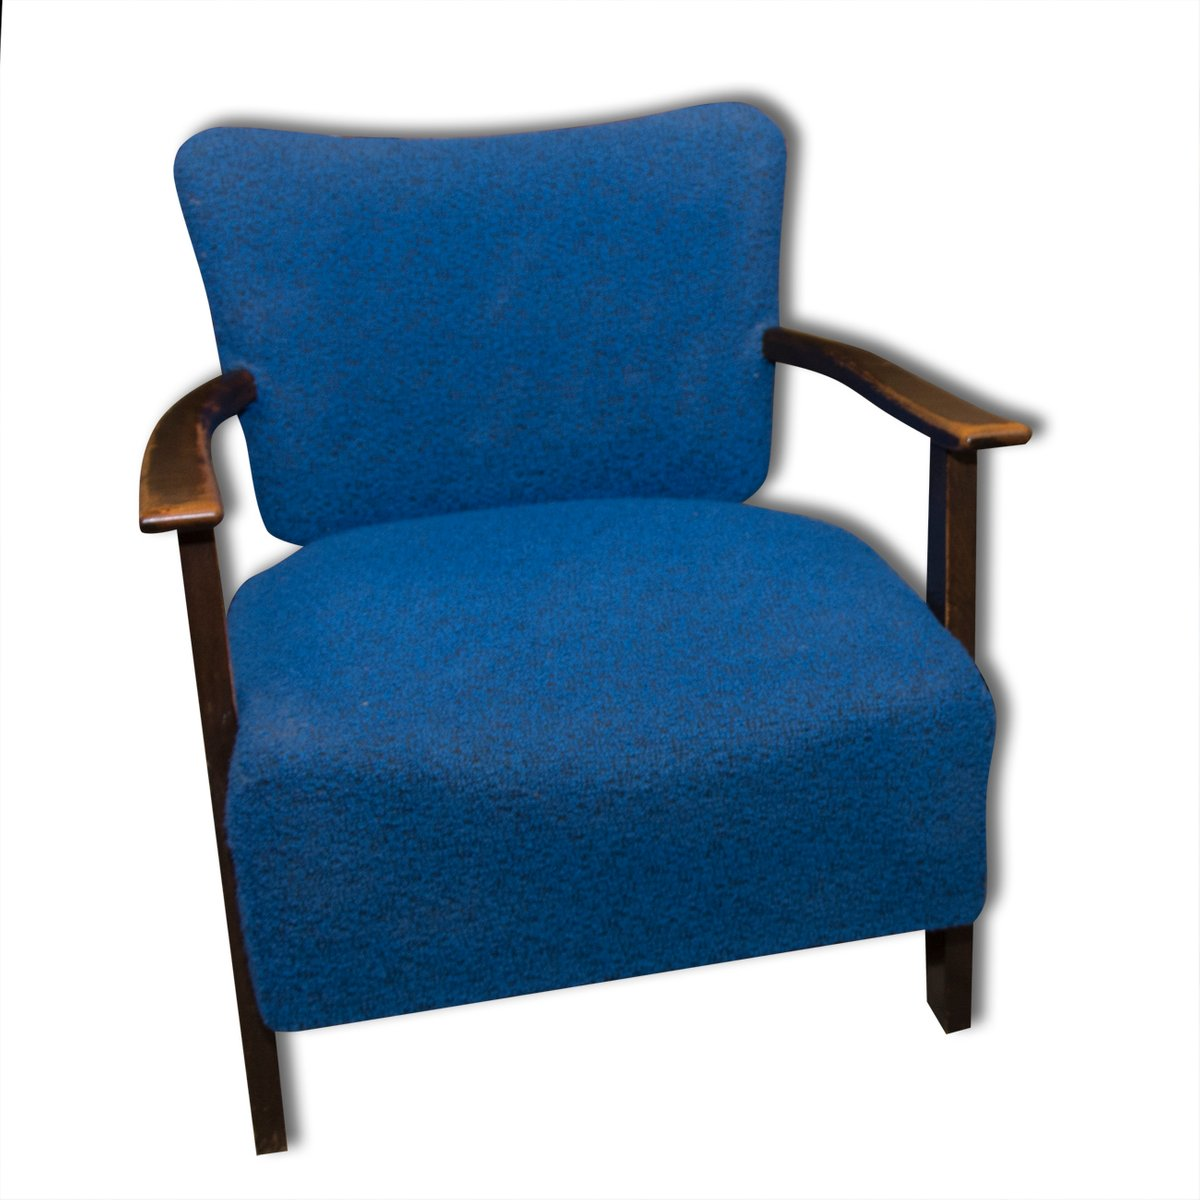 Lounge-sessel 808 Lounge Sessel Thonet